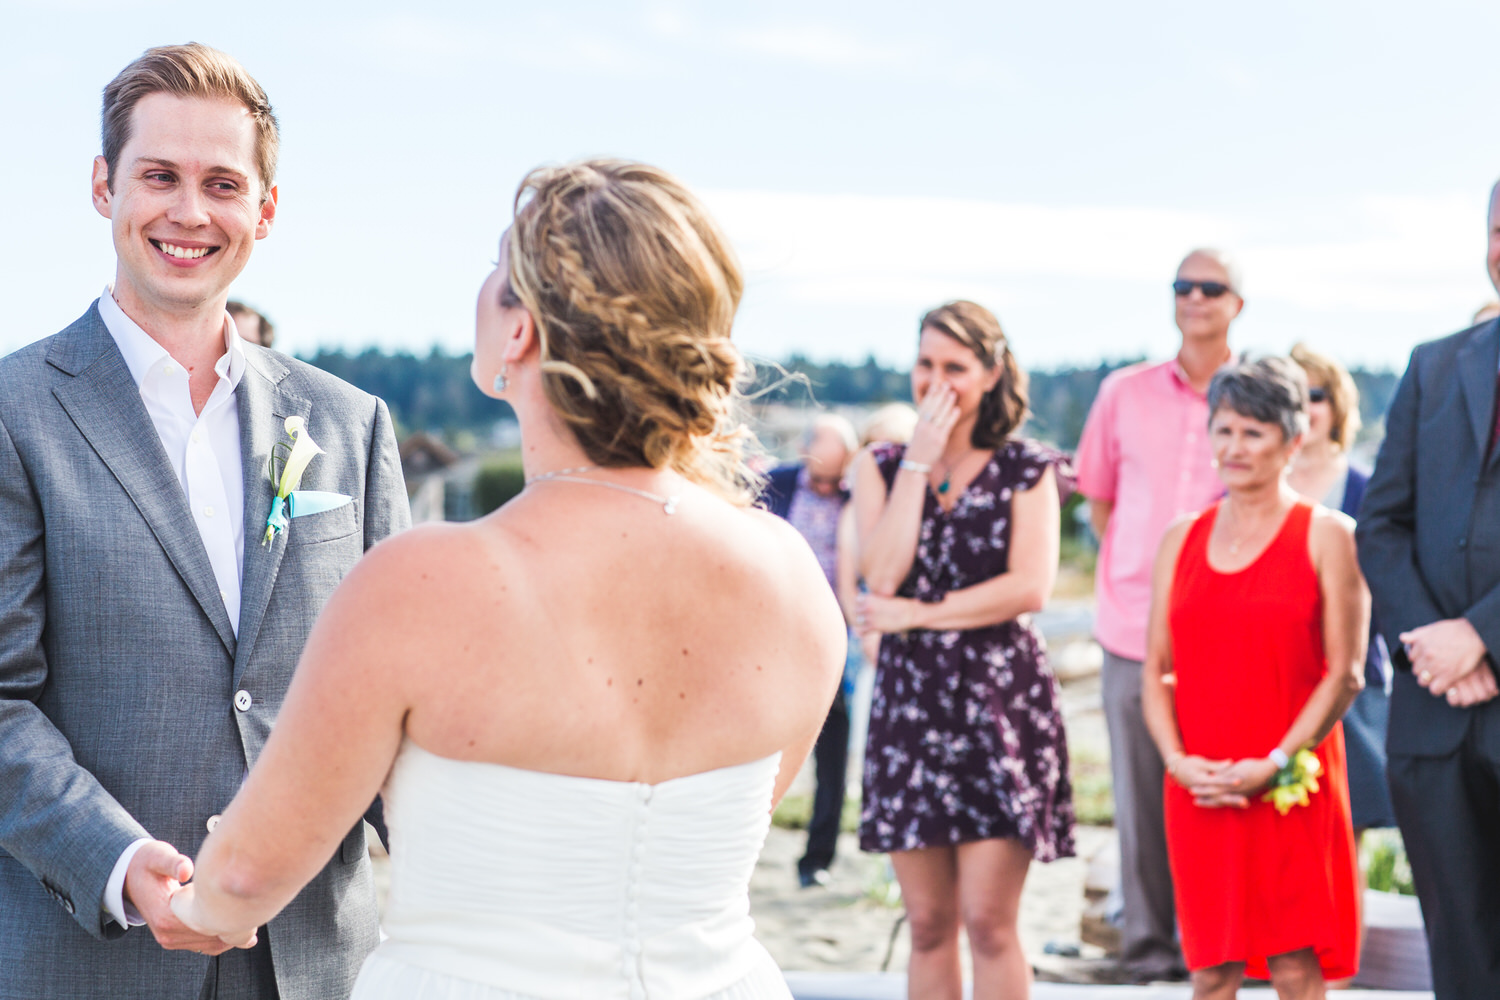 wedding ceremony at Centennial Beach in Ladner